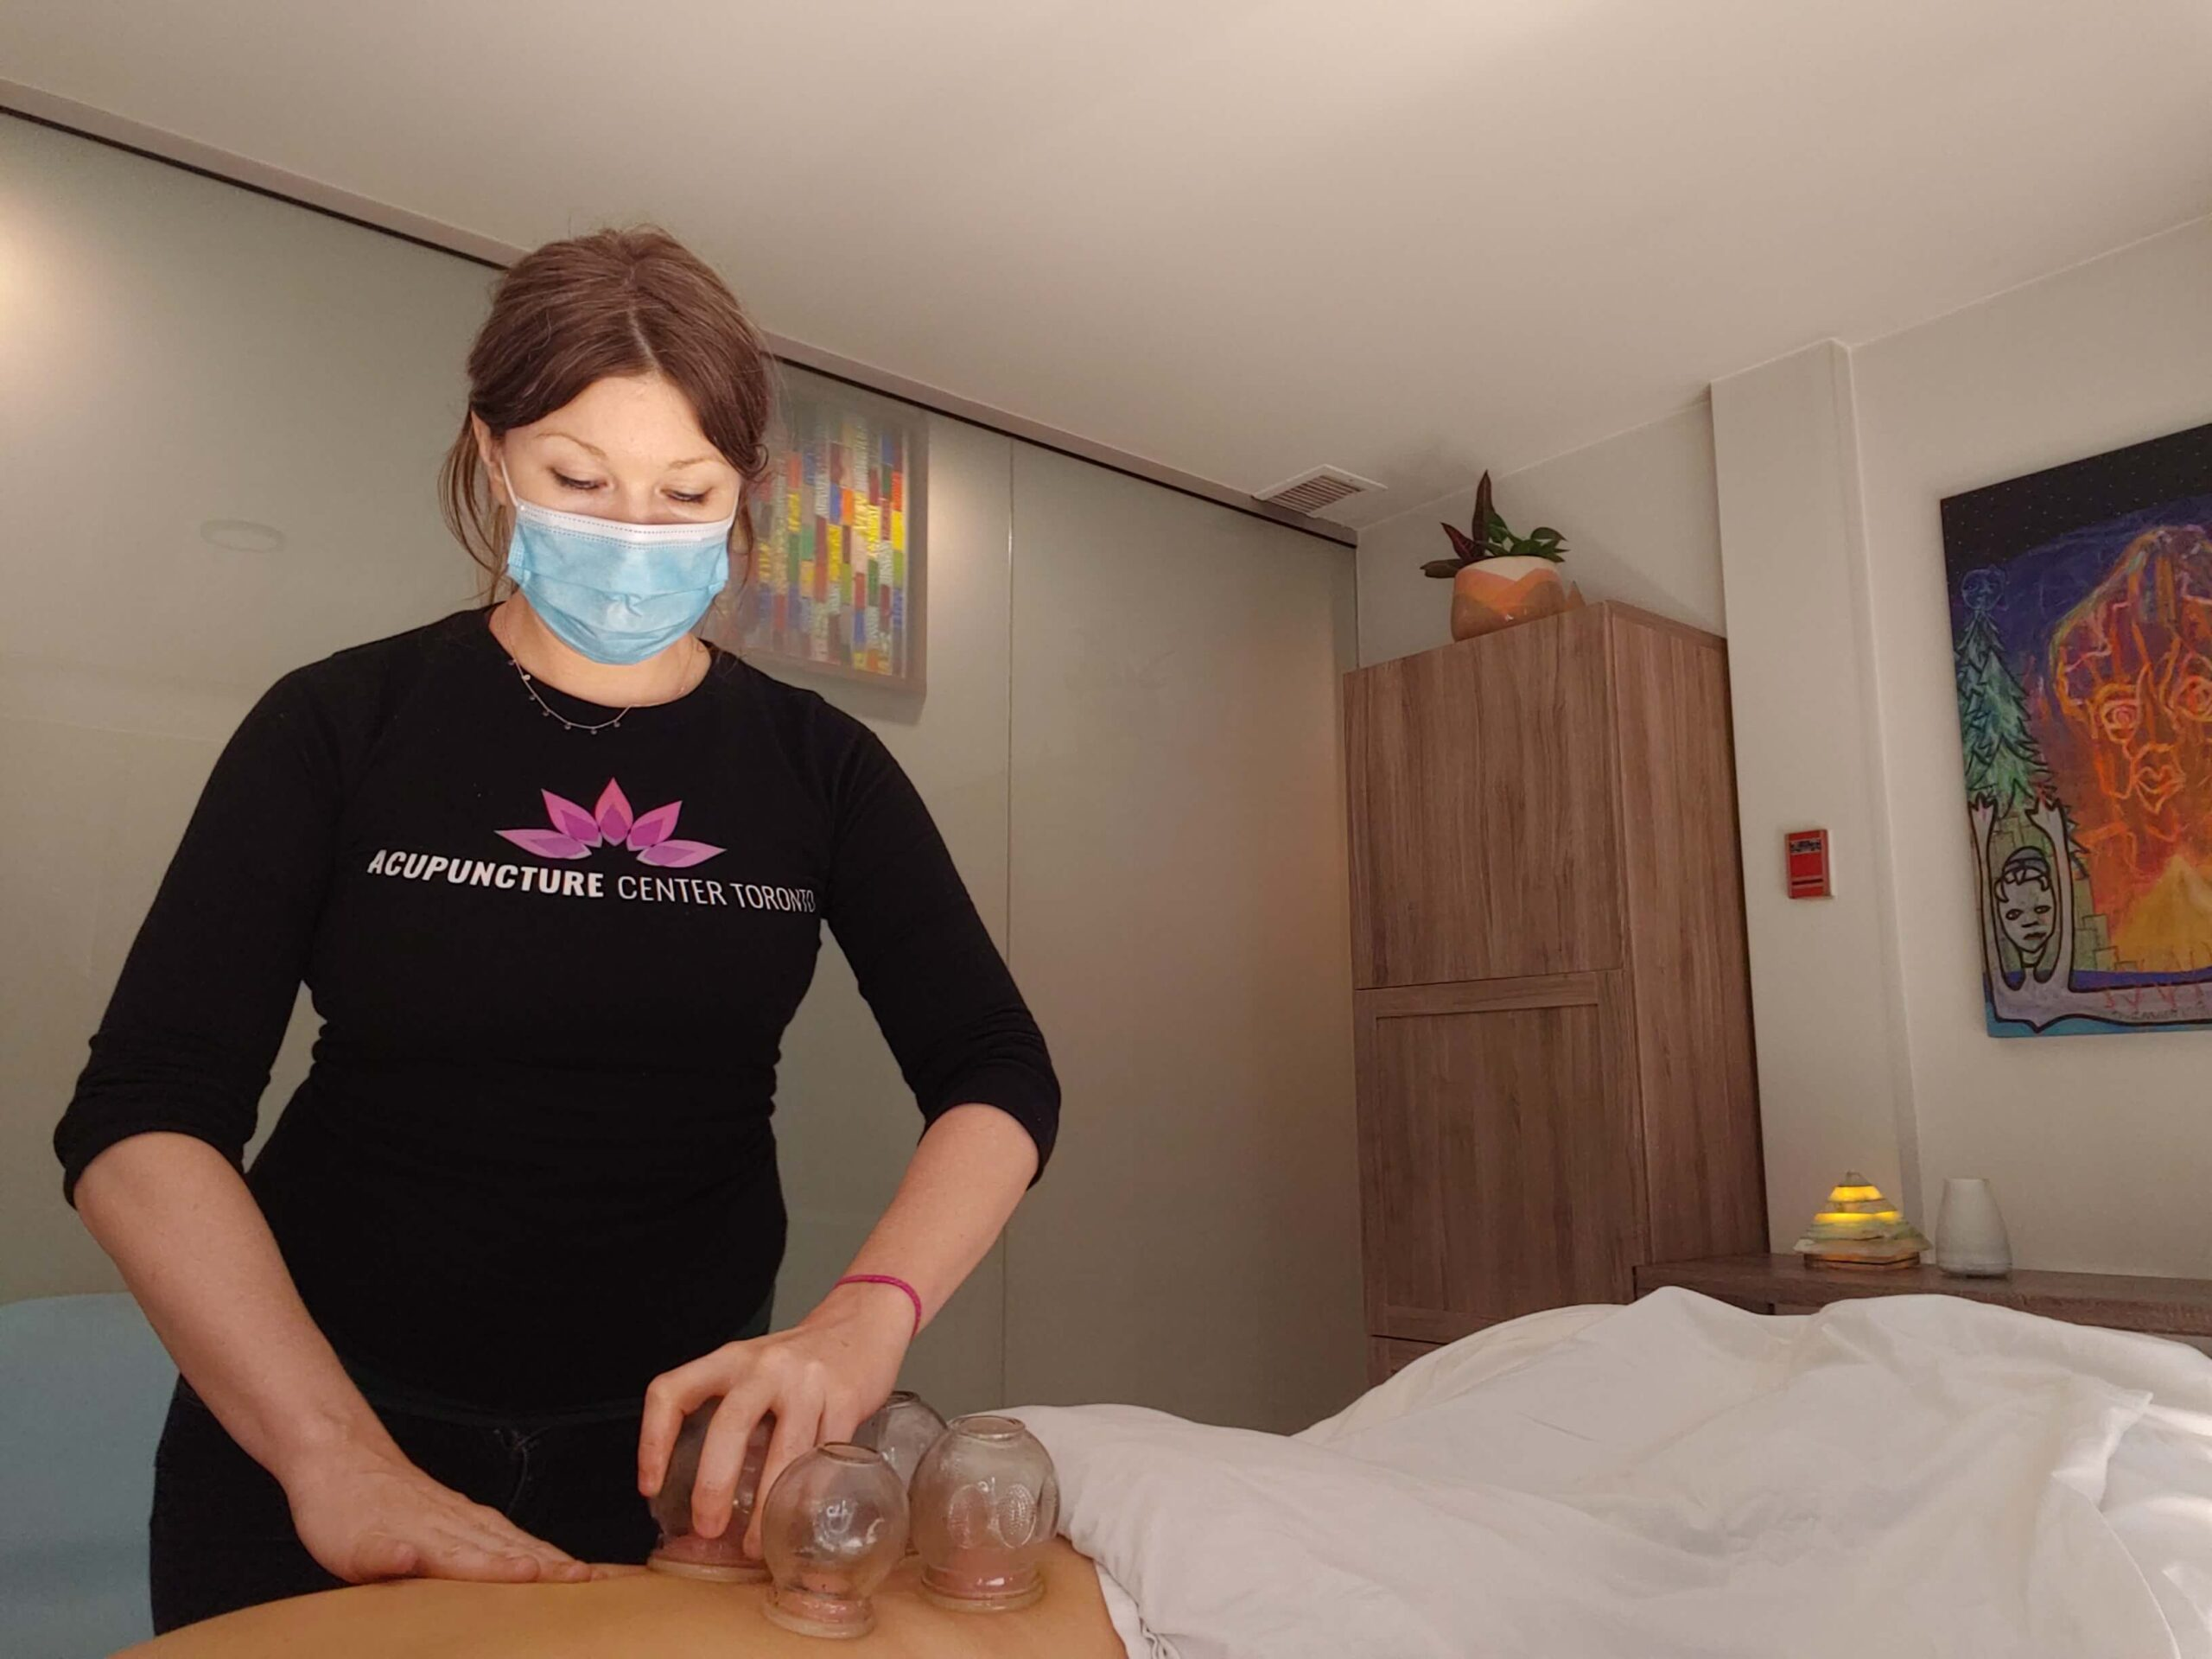 Fire cupping for low back pain at Acupuncture Center Toronto